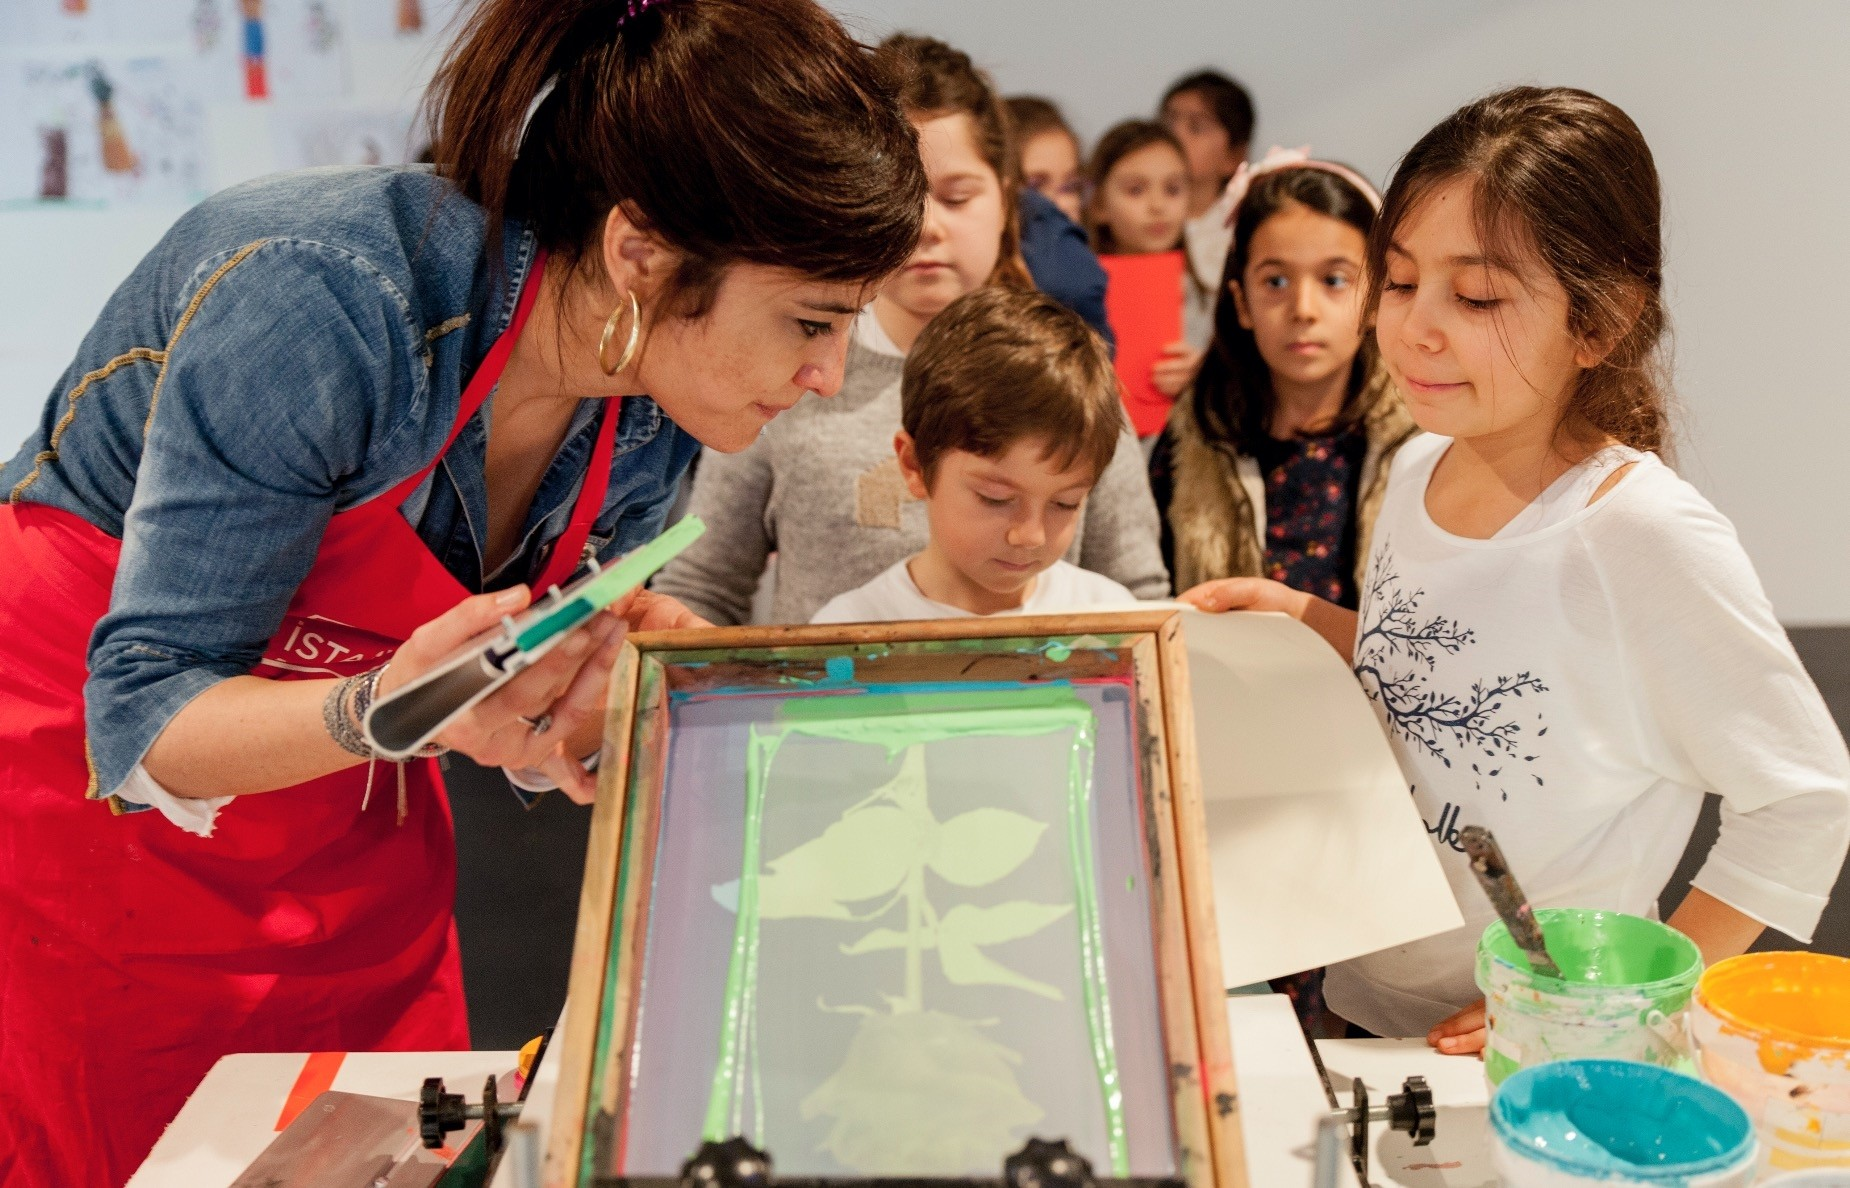 Children will learn serigraphy techniques together with their parents at the Serigraph Workshop with Ardan u00d6zmenou011flu.